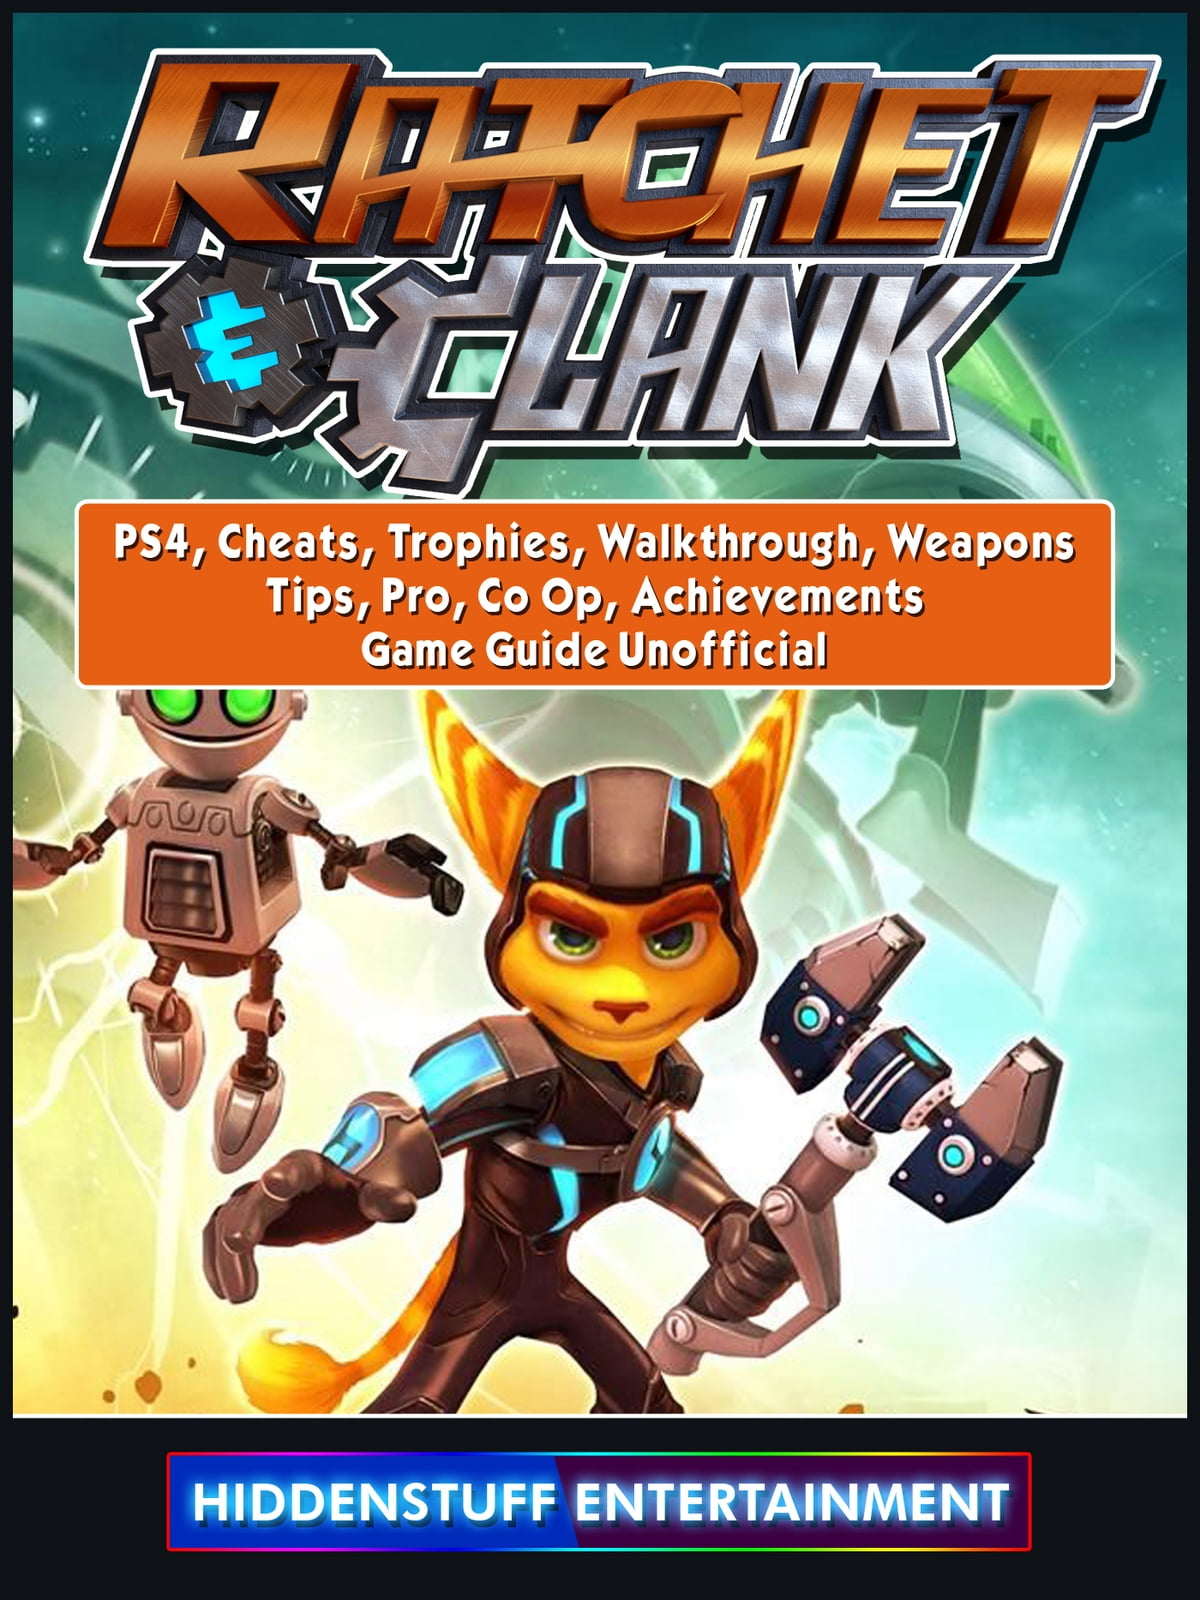 Rachet & Clank, PS4, Cheats, Trophies, Walkthrough, Weapons, Tips, Pro, Co  Op, Achievements, Game Guide Unofficial eBook by Hiddenstuff Entertainment  ...